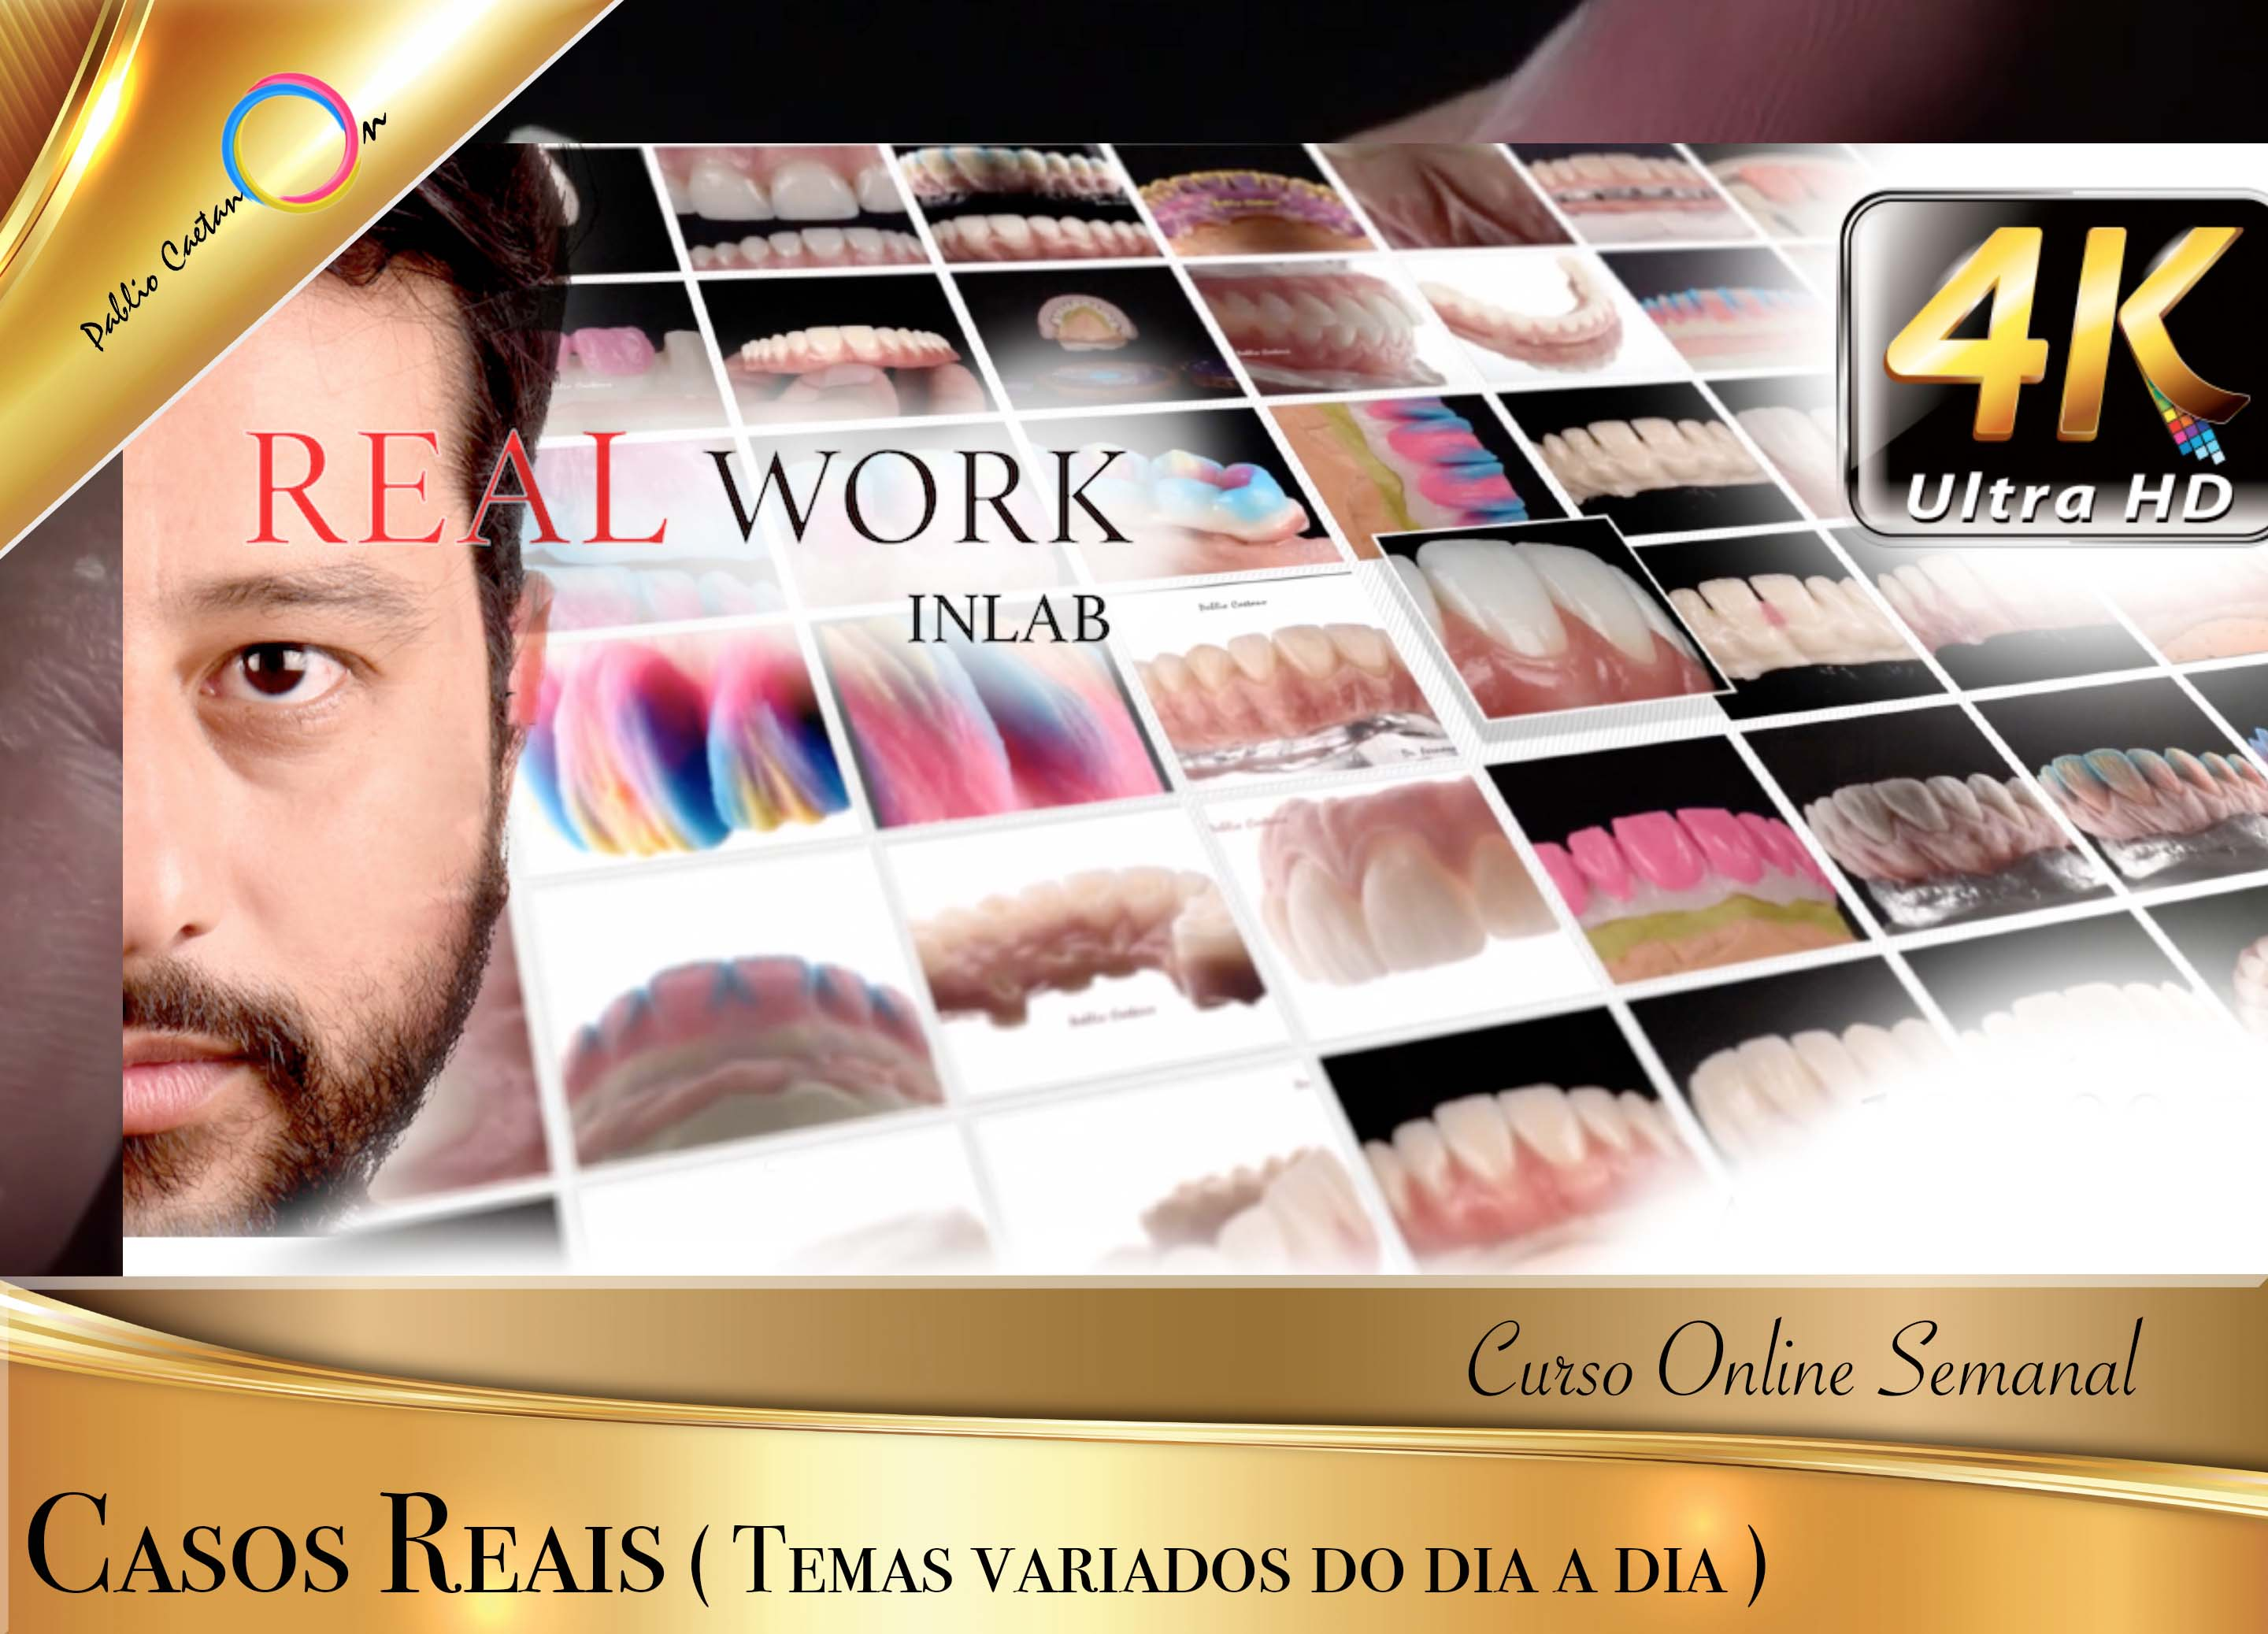 Real%20work